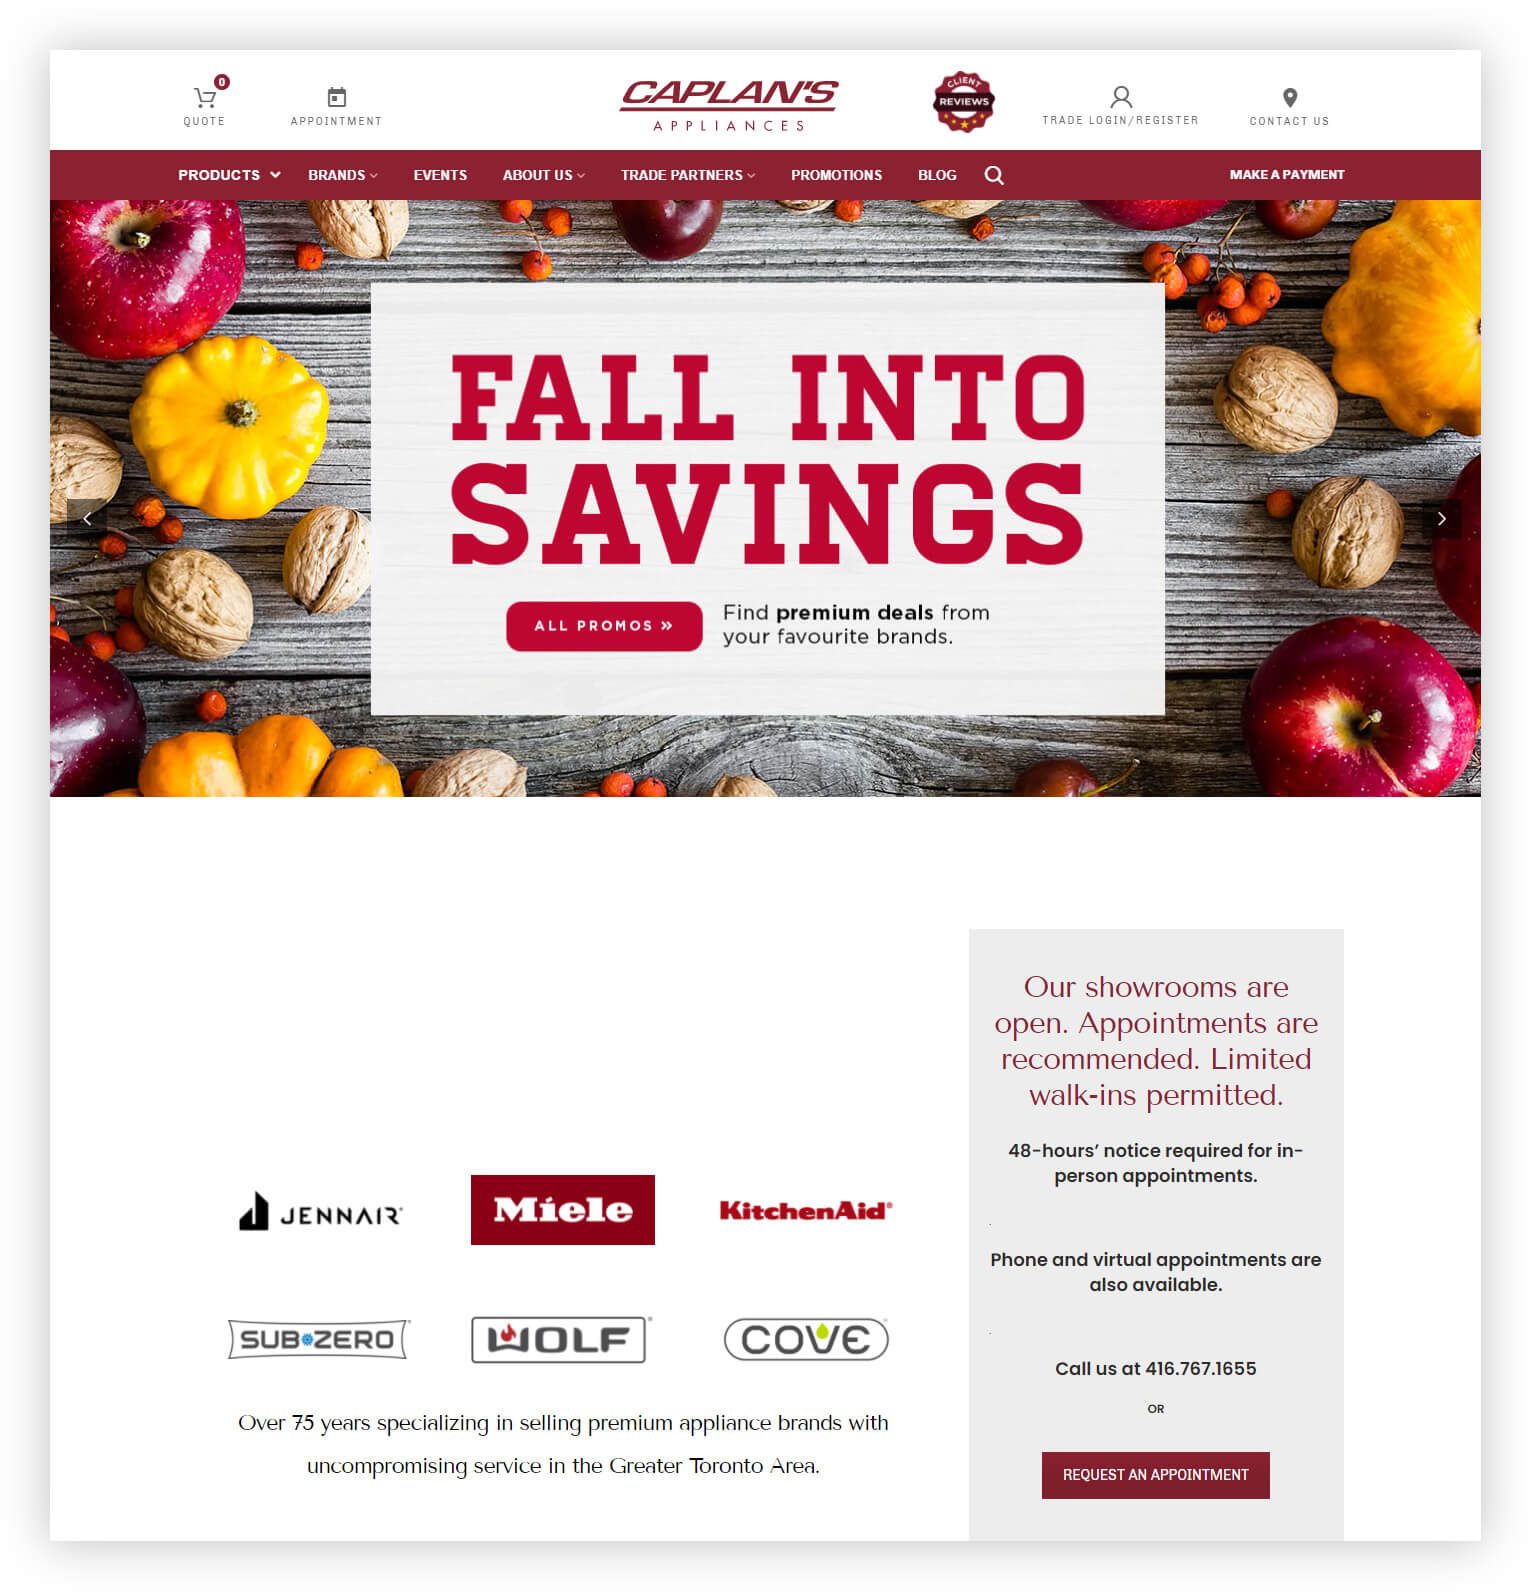 Caplan's Appliances home page